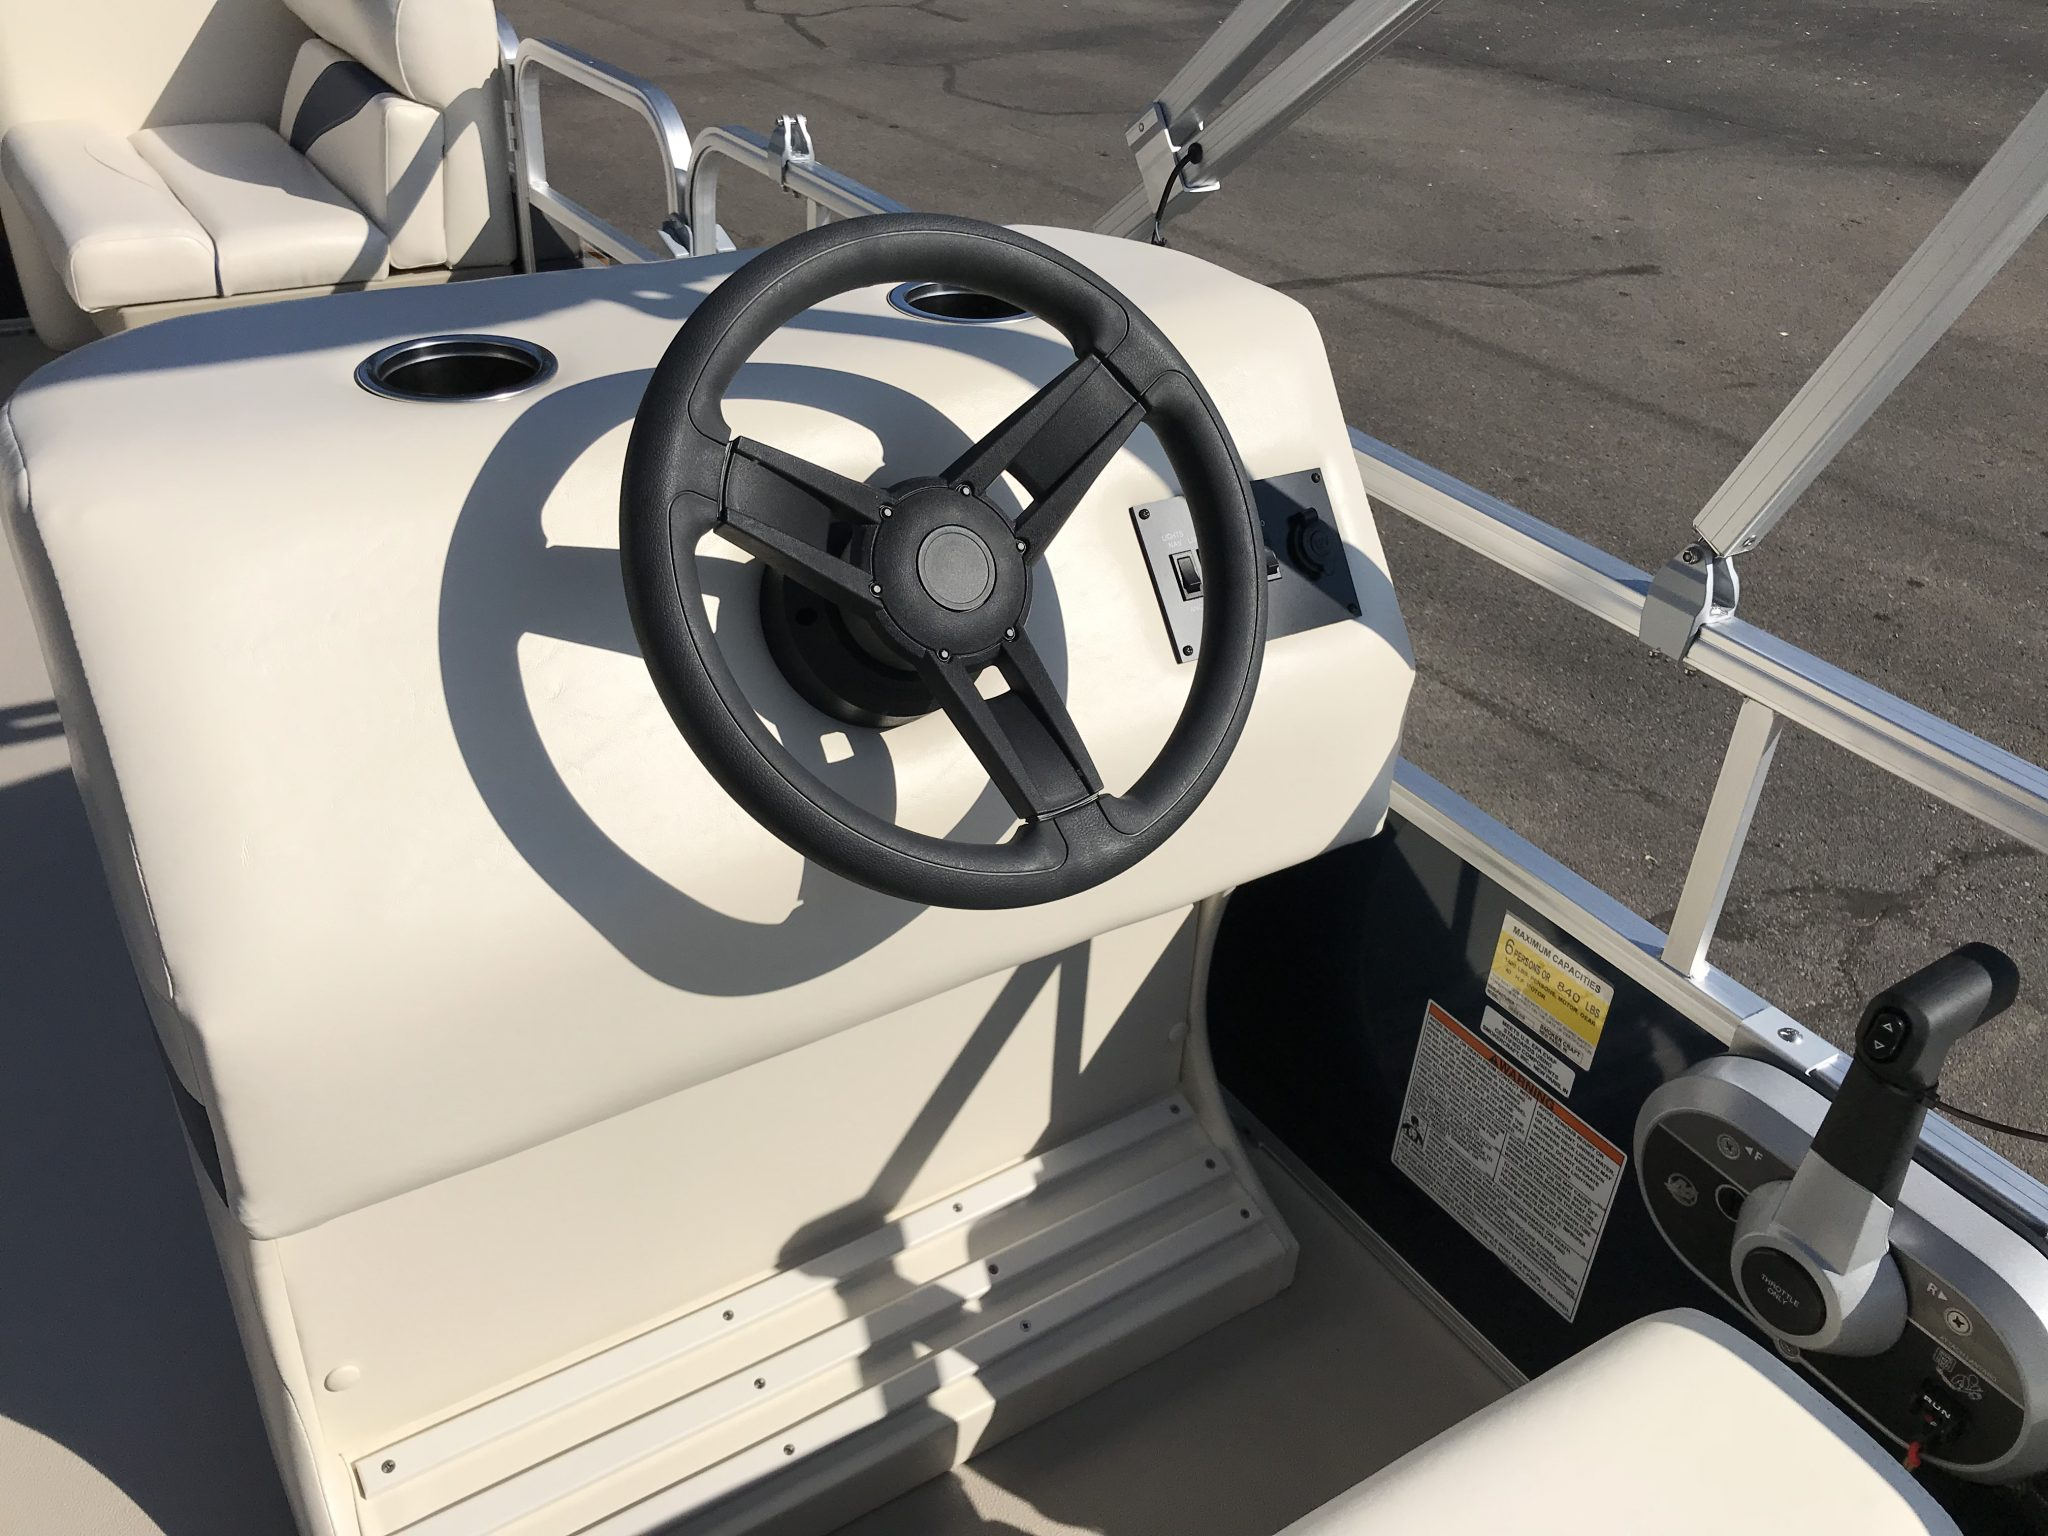 2019 SunChaser 816 Cruise Helm And Steering Wheel